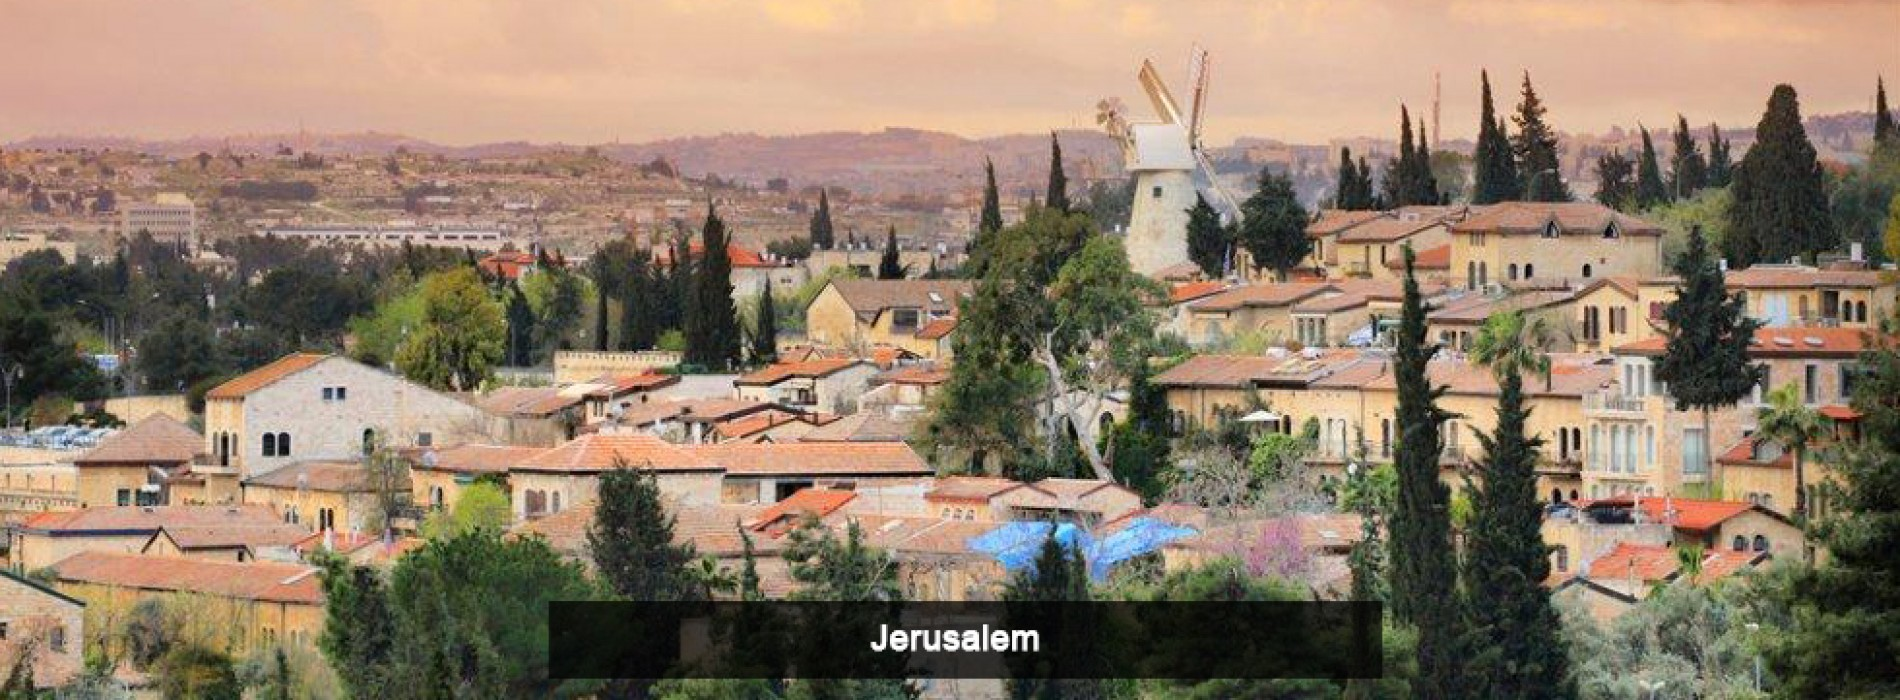 Israel Ministry of Tourism conducts Six-city roadshow in India